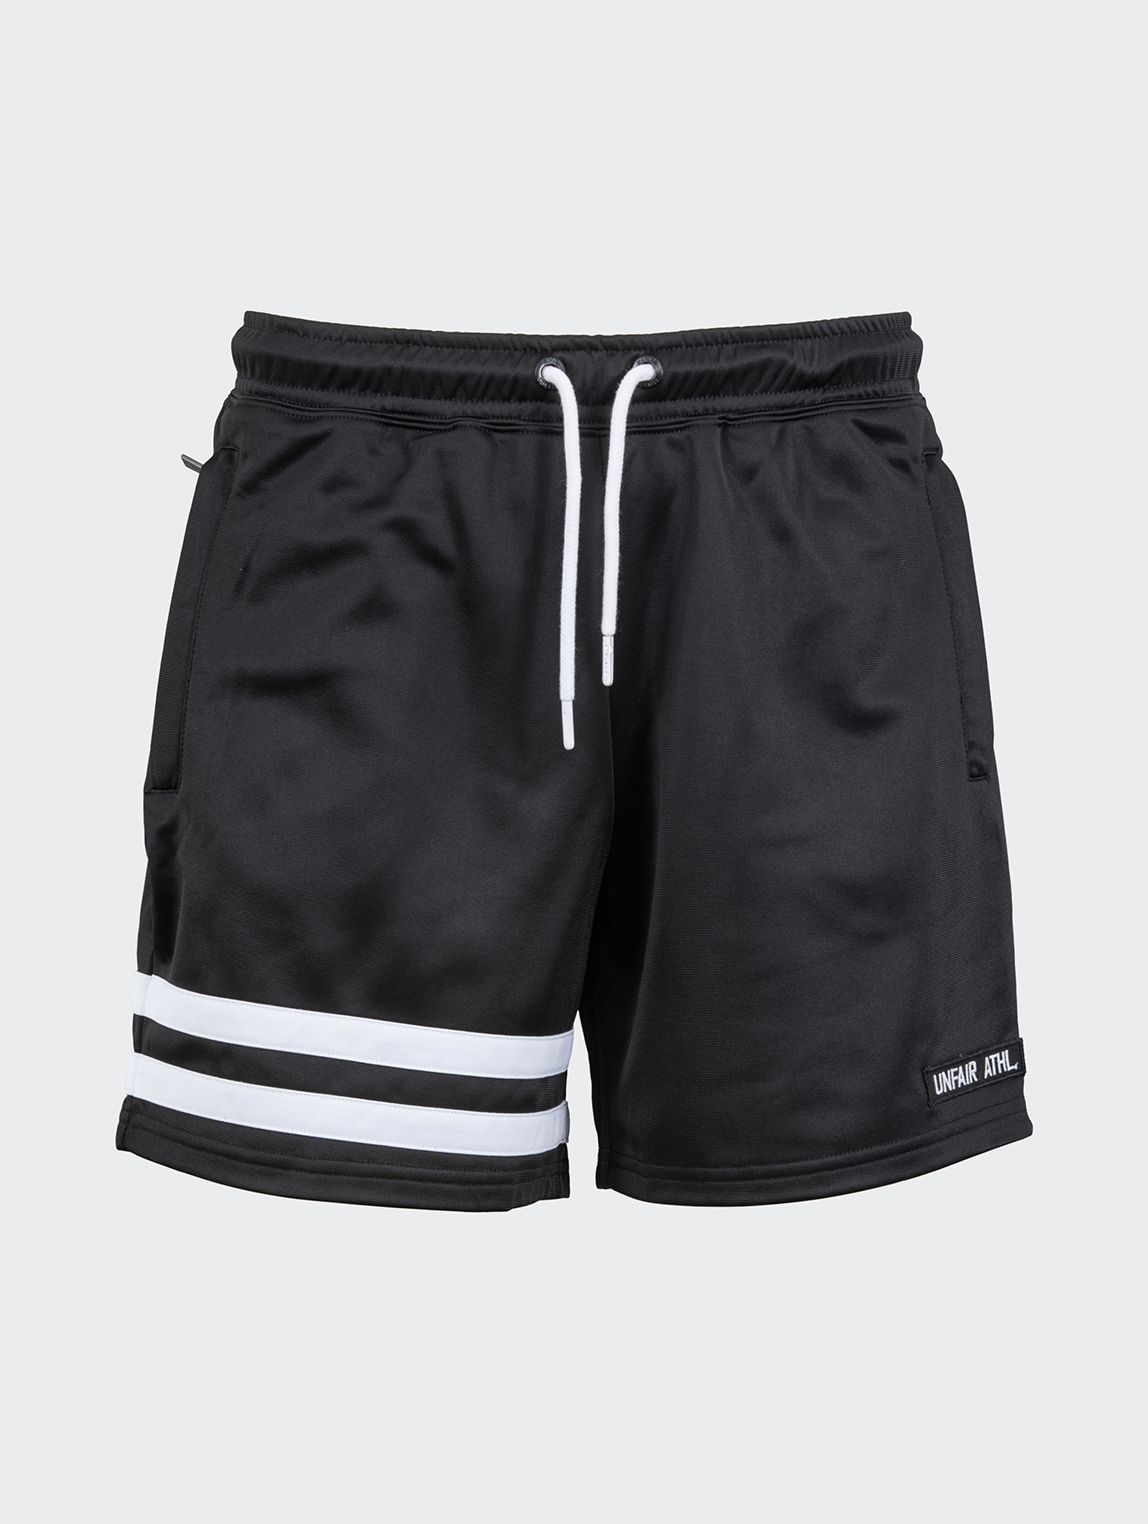 DMWU Athletic Shorts Black